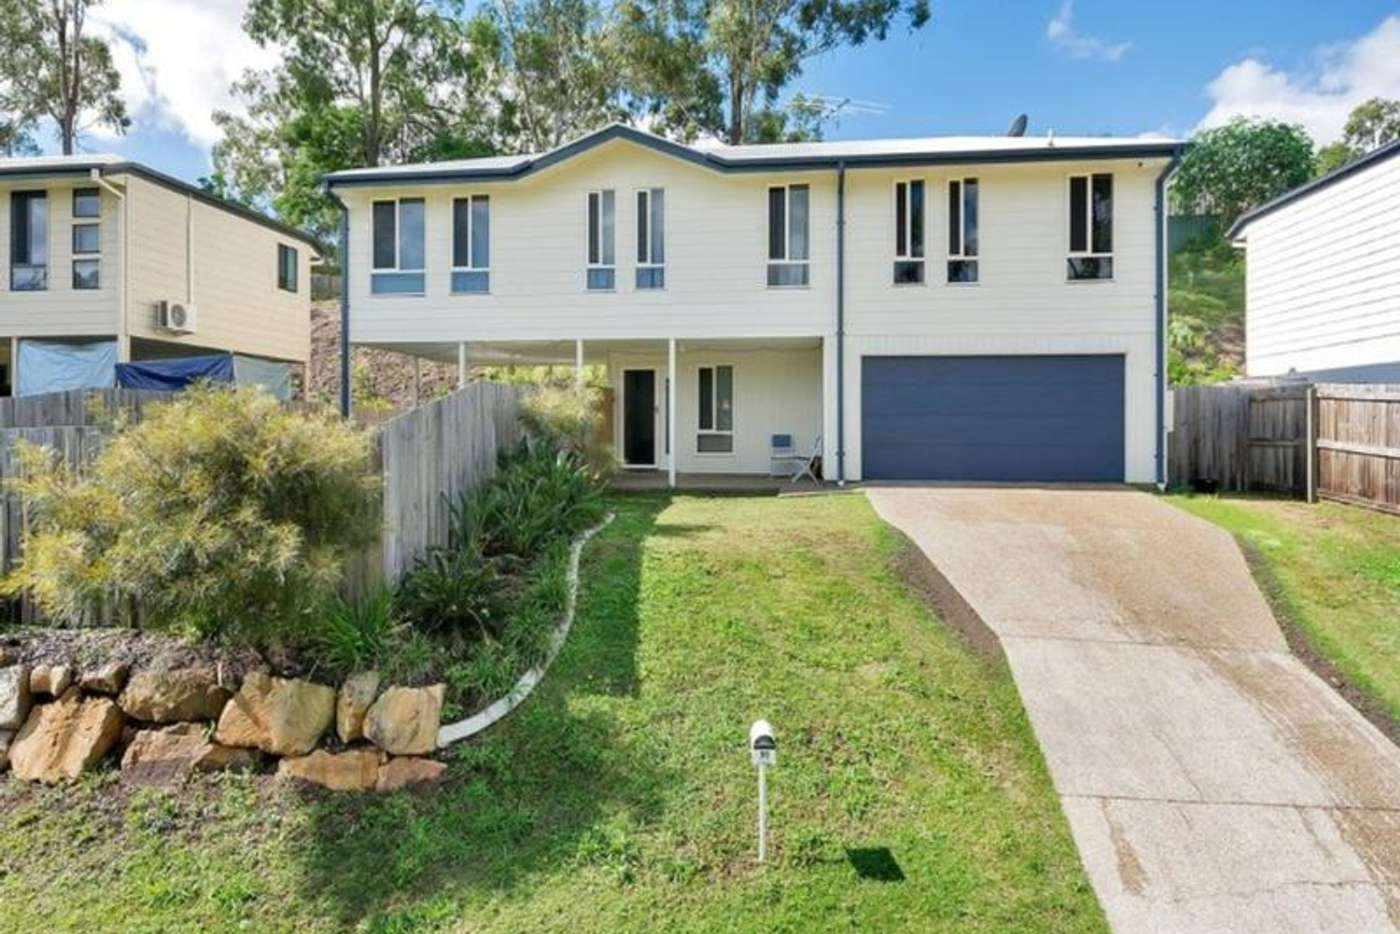 Main view of Homely house listing, 90 High Street, Blackstone QLD 4304